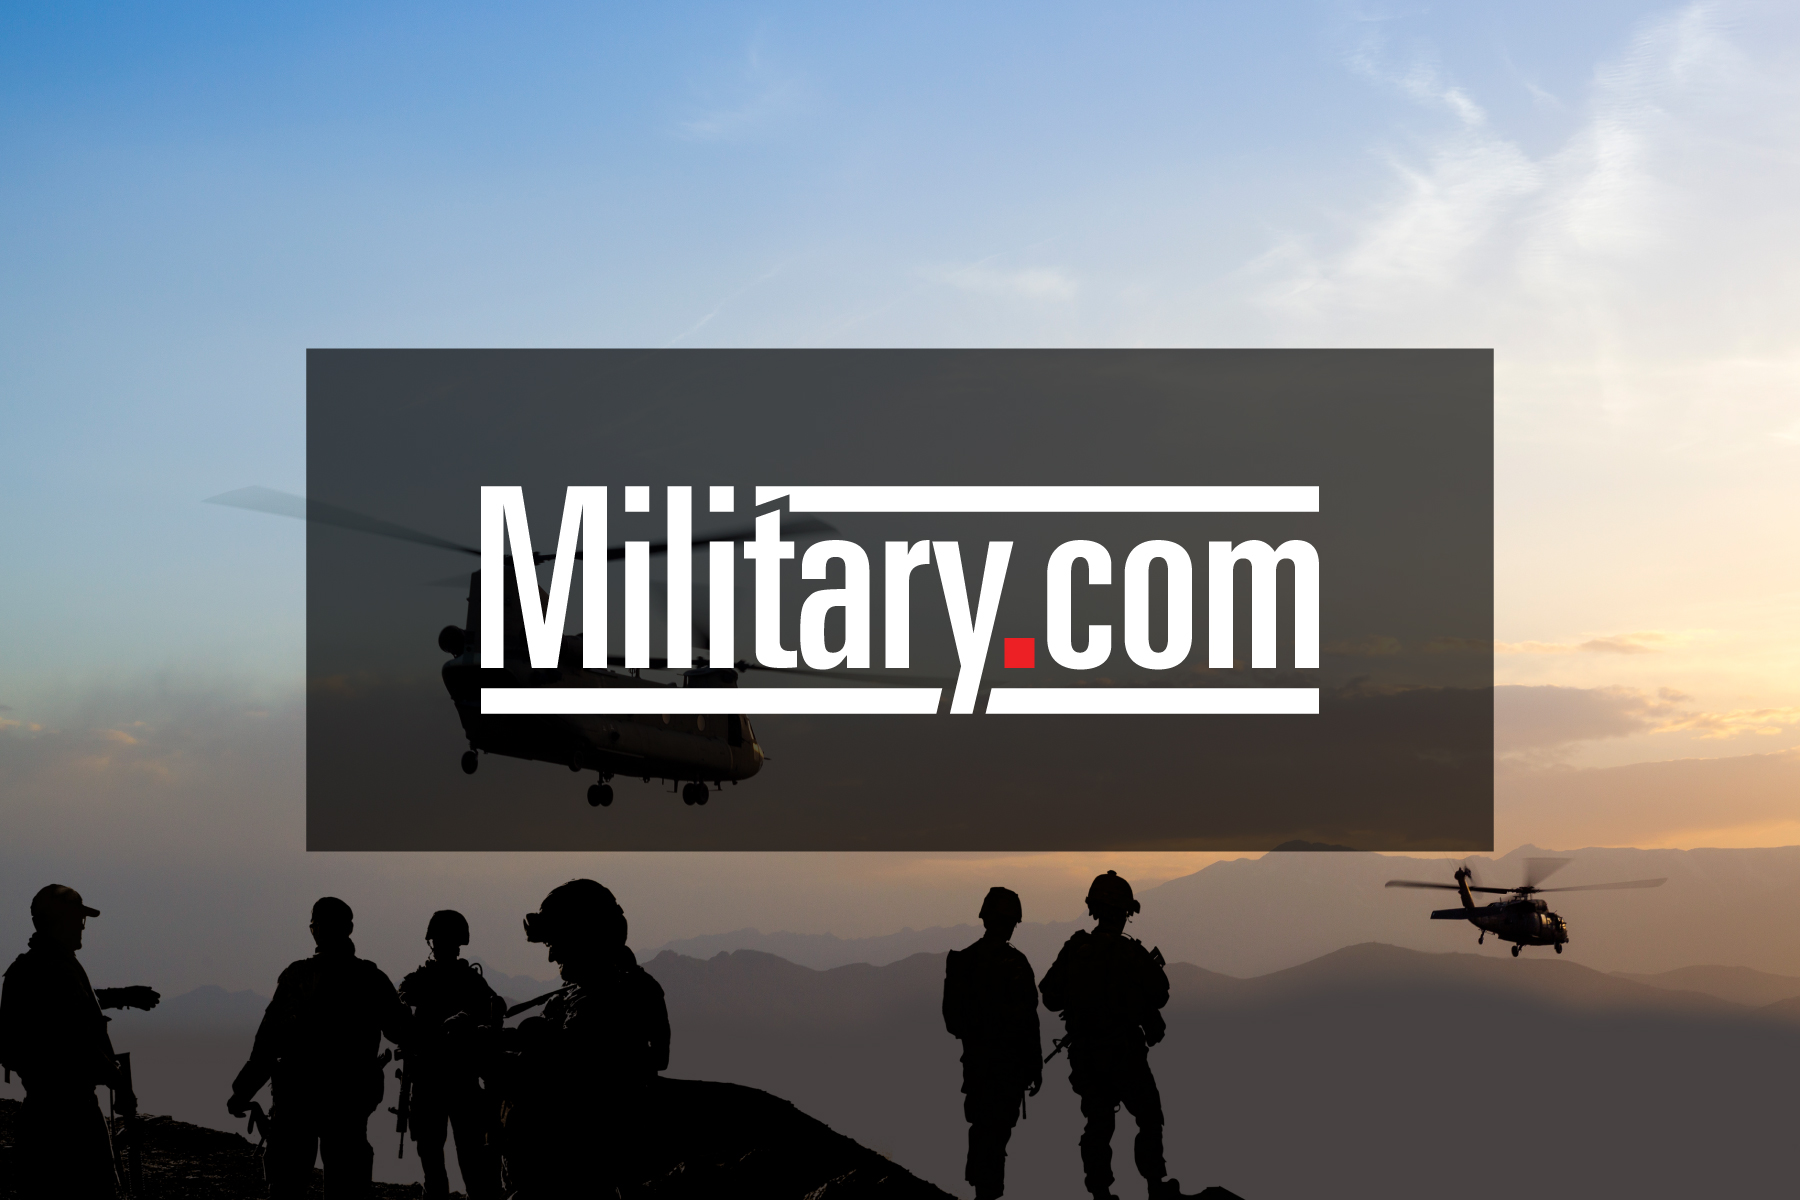 Aug 05,  · A military discount for a flight is exactly what it sounds like: a special discount for military members when flying. Many airlines recognize the importance of military members and, as a small thank you, offer special military-only discounts/5(K).